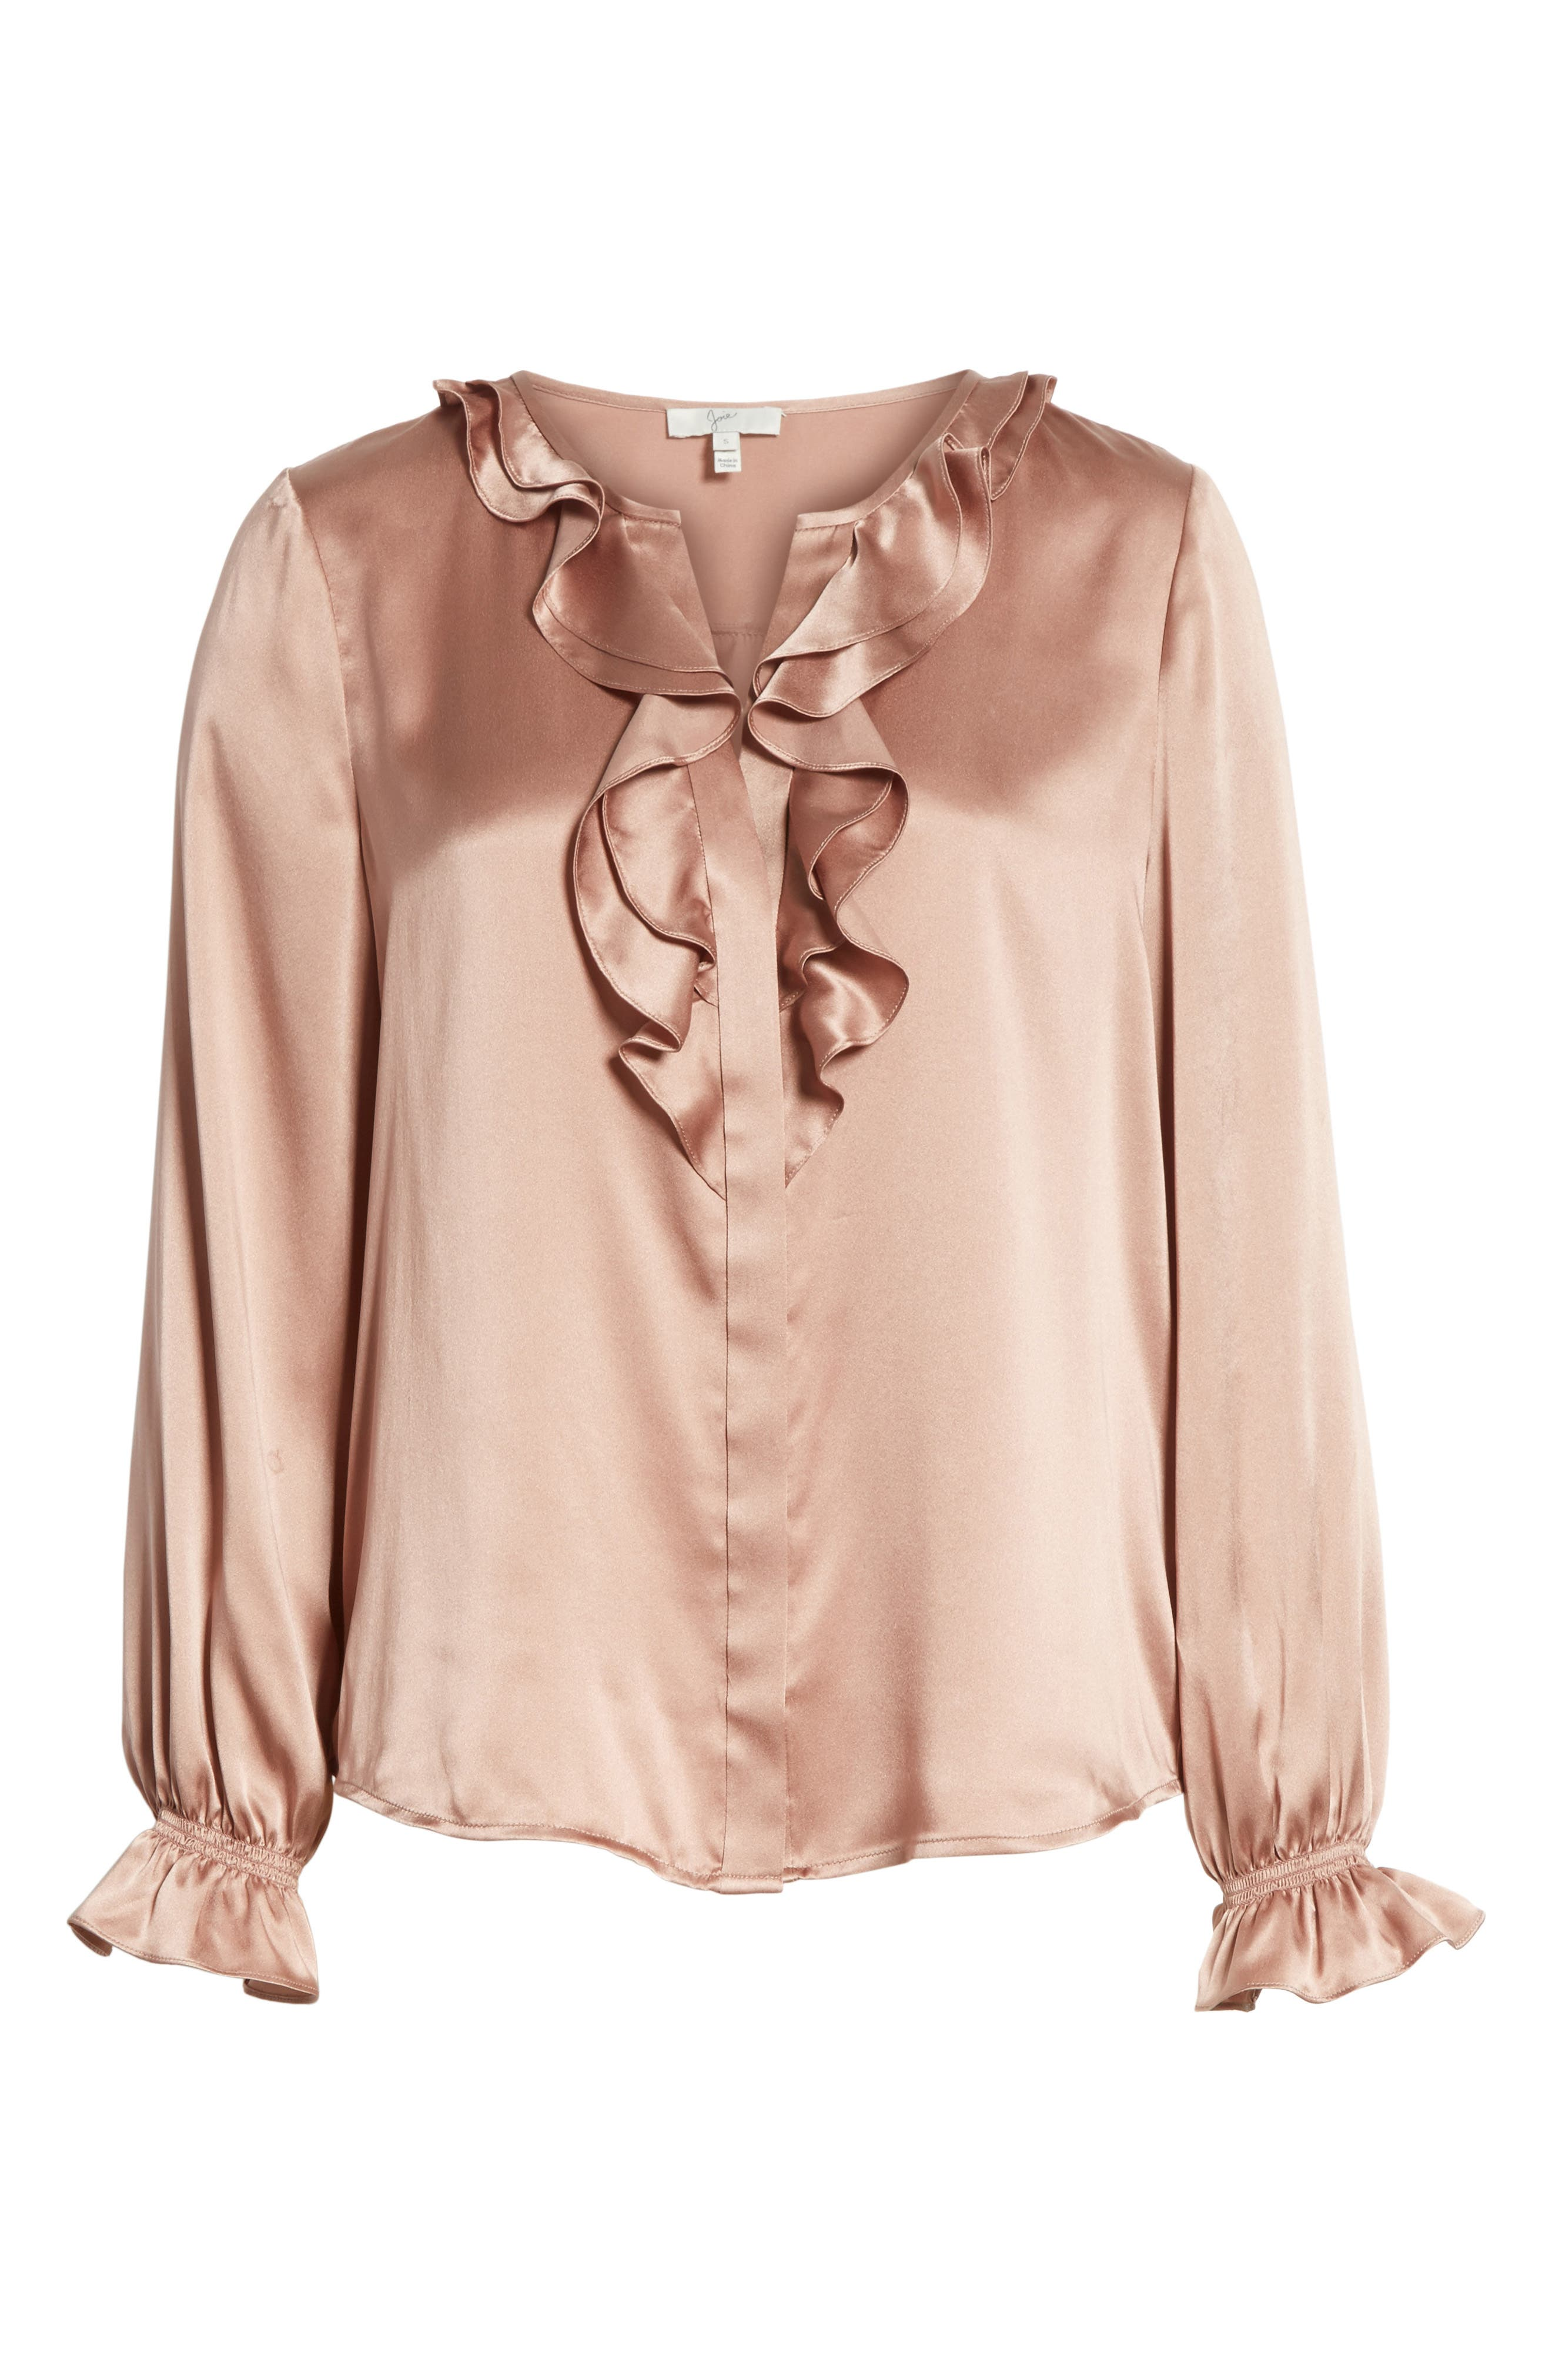 Jayanne B Silk Blouse,                             Alternate thumbnail 6, color,                             Dried Rose